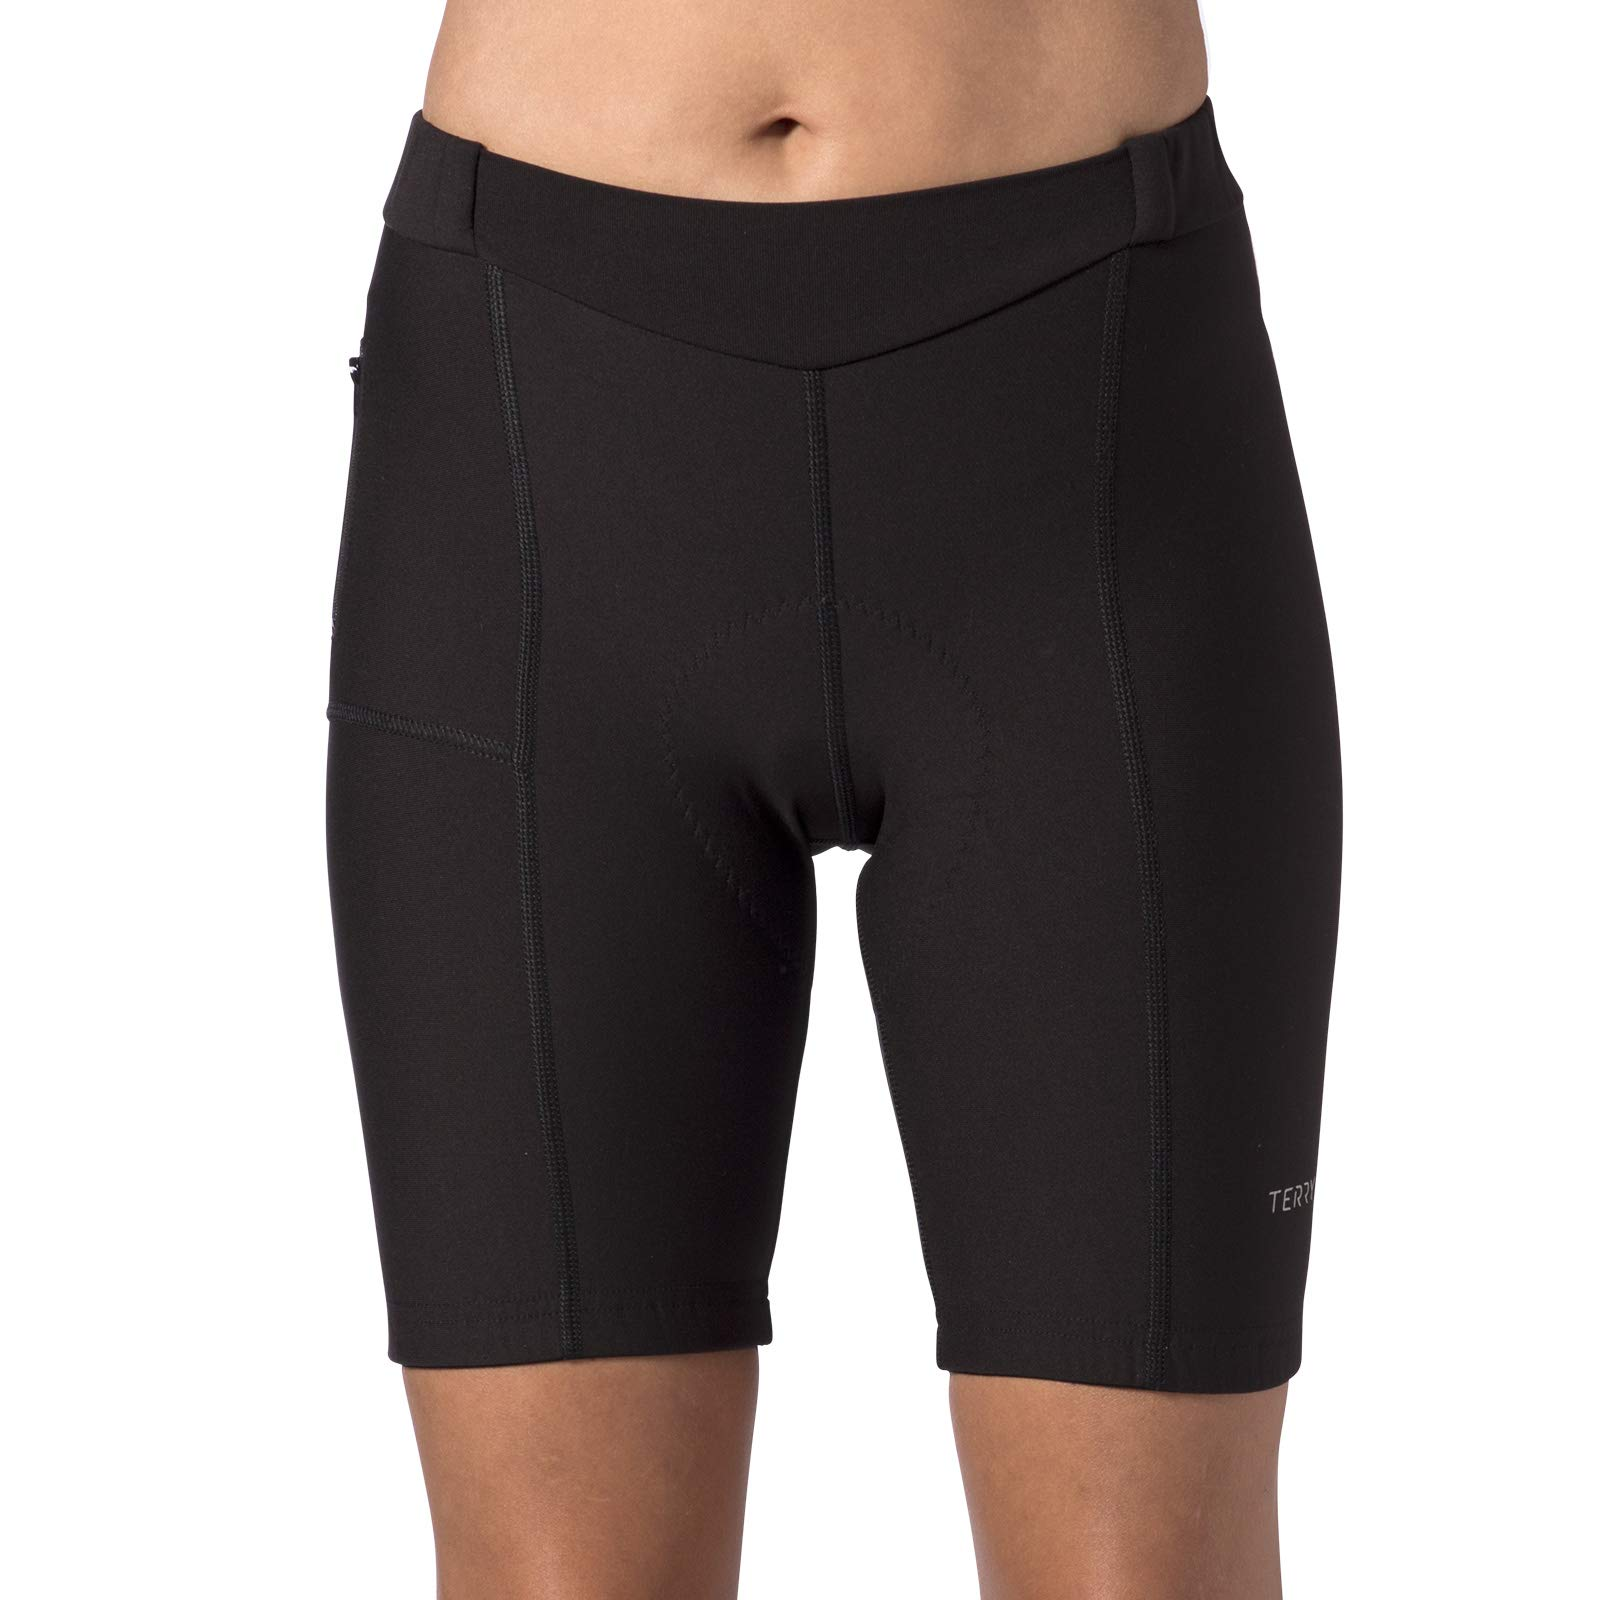 Terry Women's Touring Cycling Shorts/Regular - Best Padded Compression Multi-Day, Moisture-Wicking Cycling Shorts for Touring - Black - Small